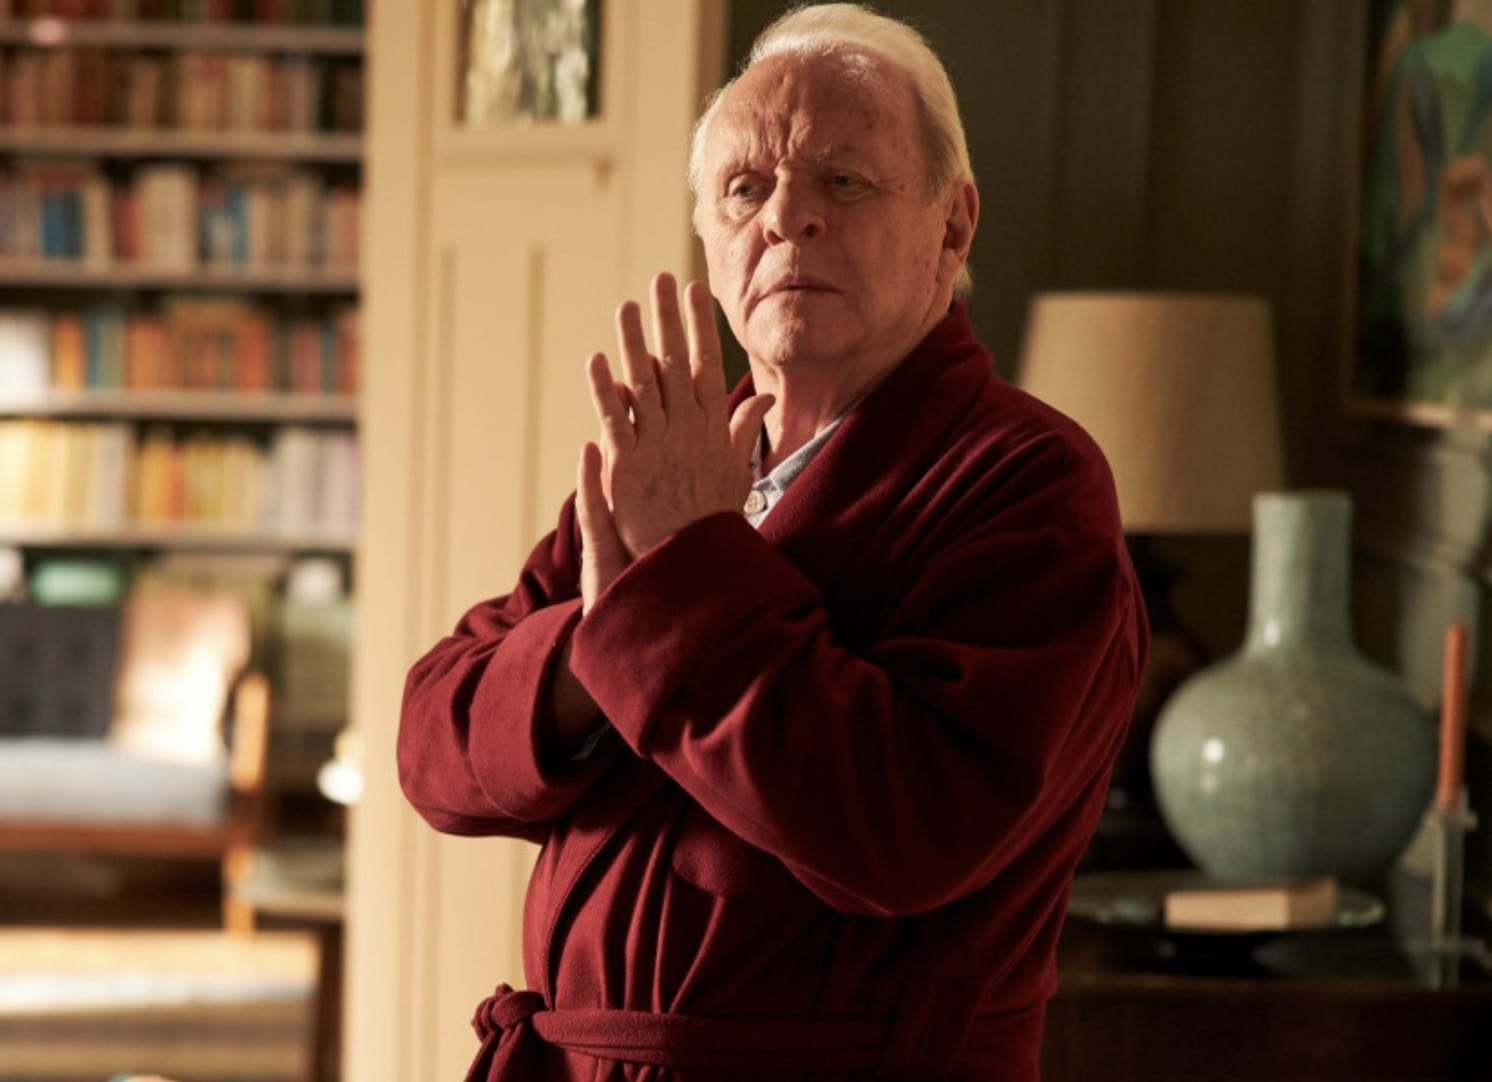 Anthony Hopkins in The Father, wearing a red bathrobe over pajamas in a living room